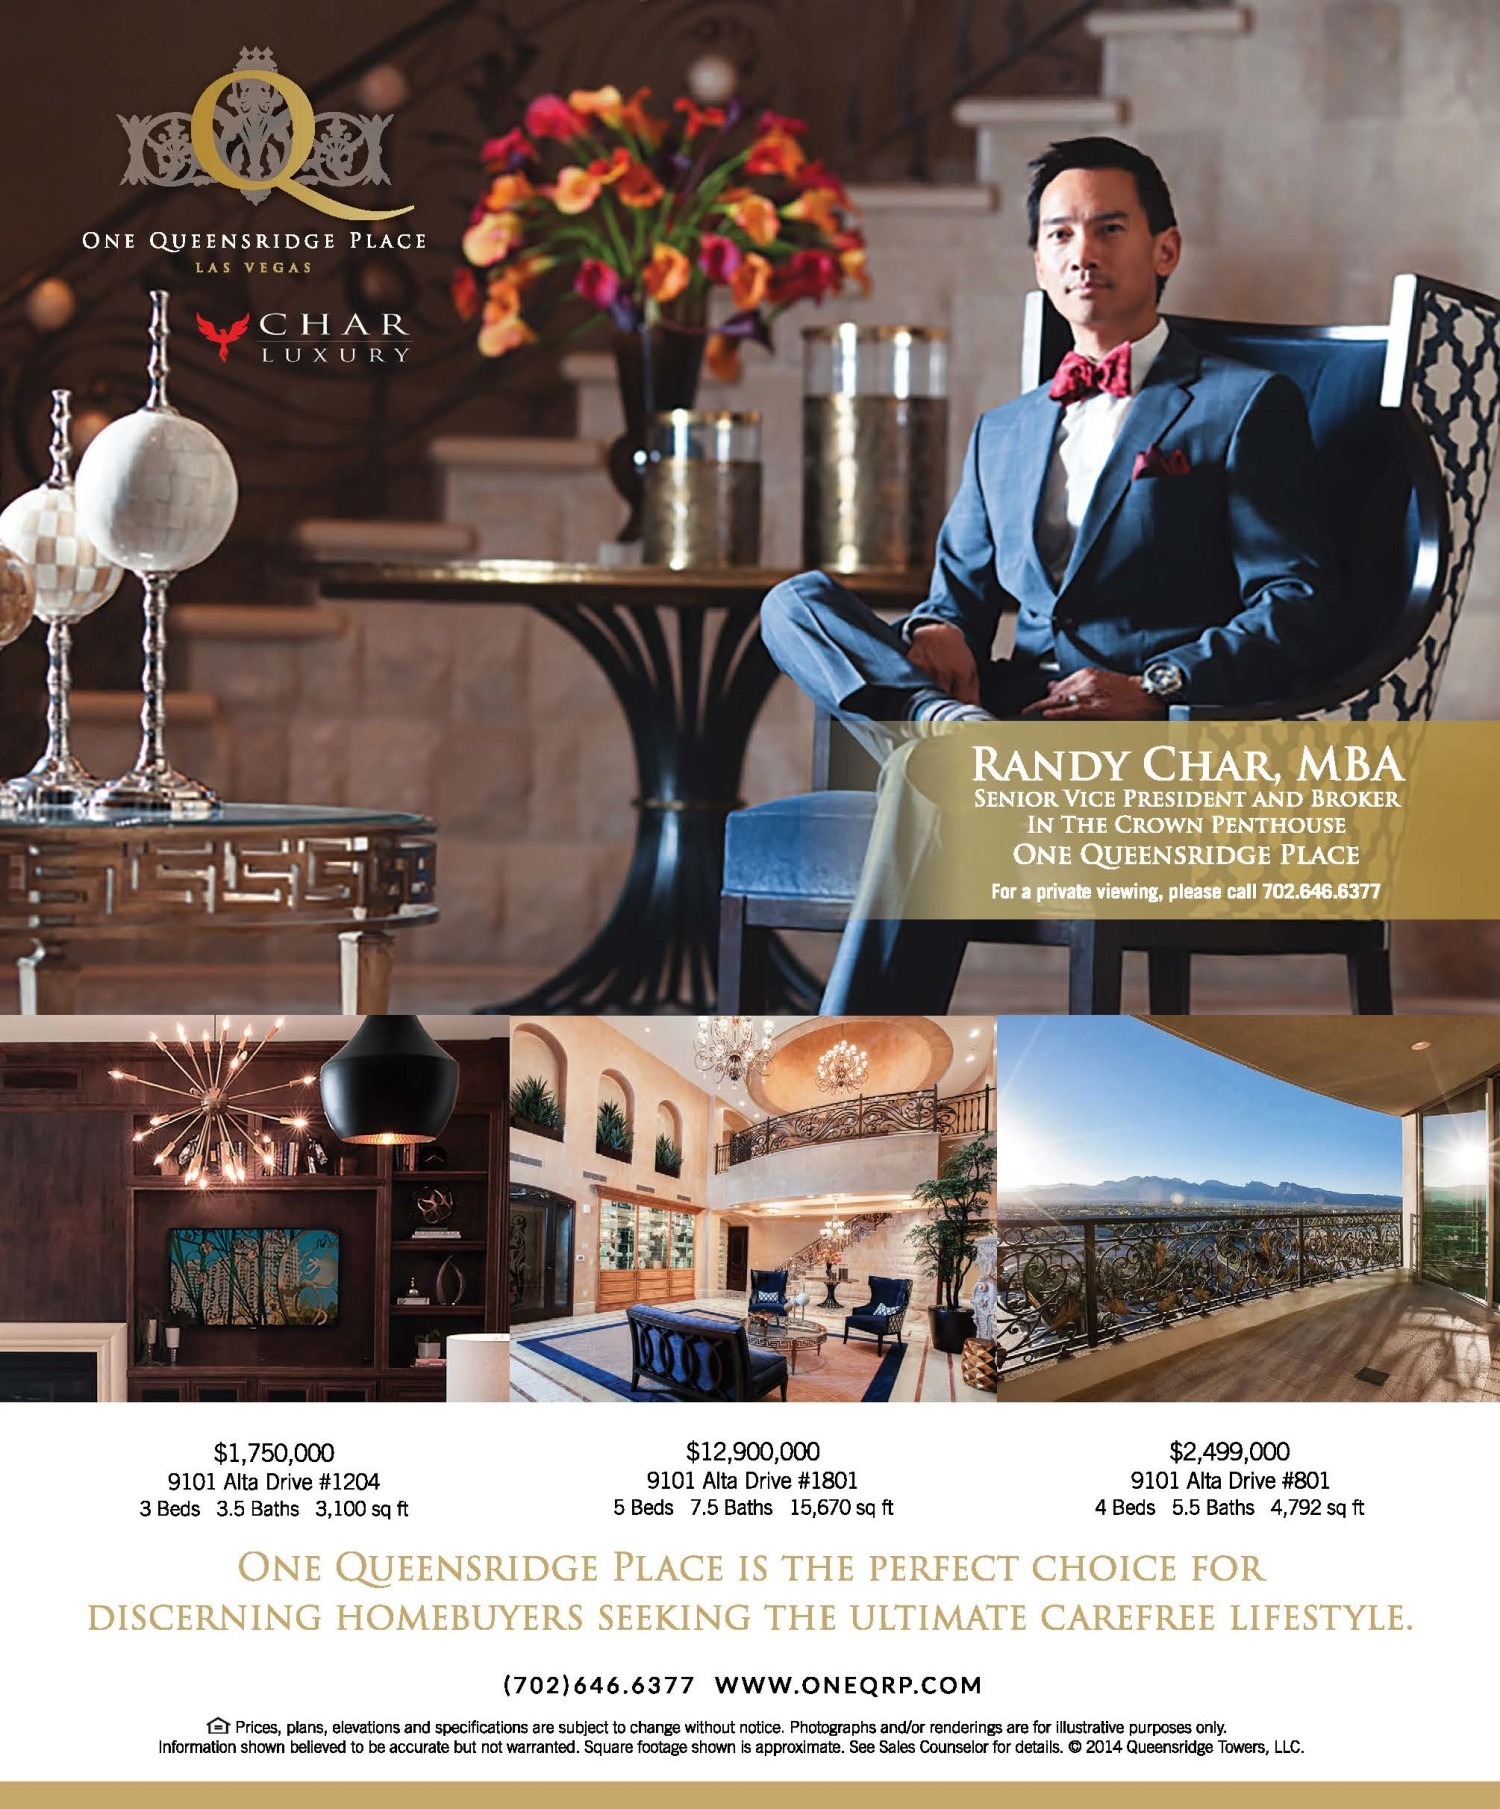 char-luxury-vegas-magazine